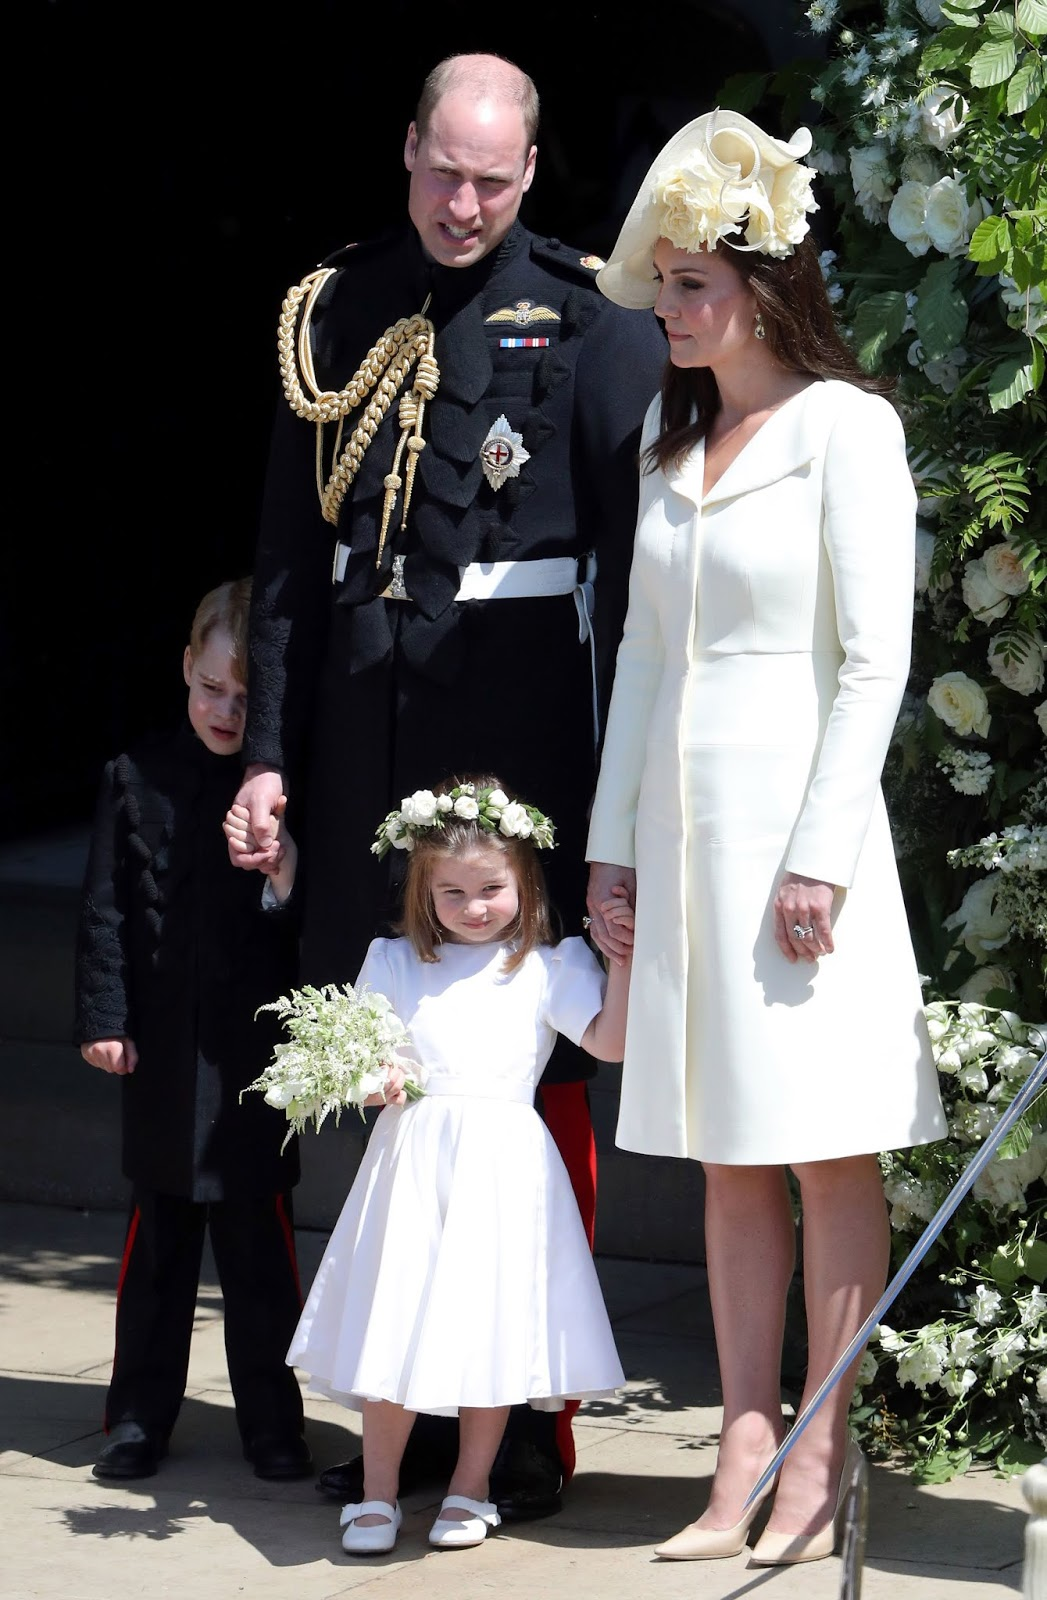 Prince George, Prince William, Princess Charlotte and Duchess Catherine